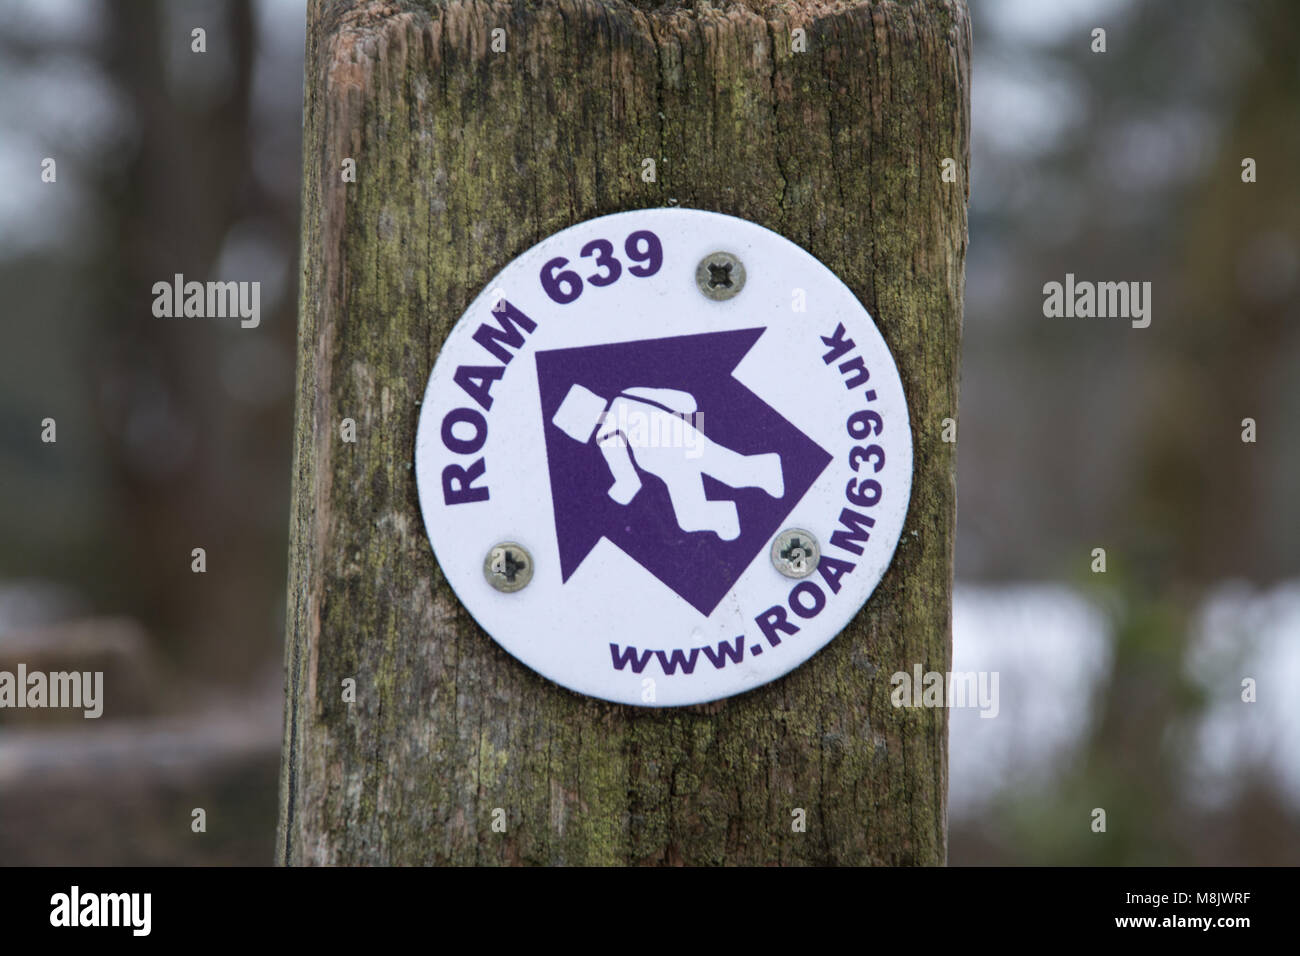 Signpost marker for the ROAM 639 trail at the Devils Punchbowl in the Surrey Hills - Stock Image